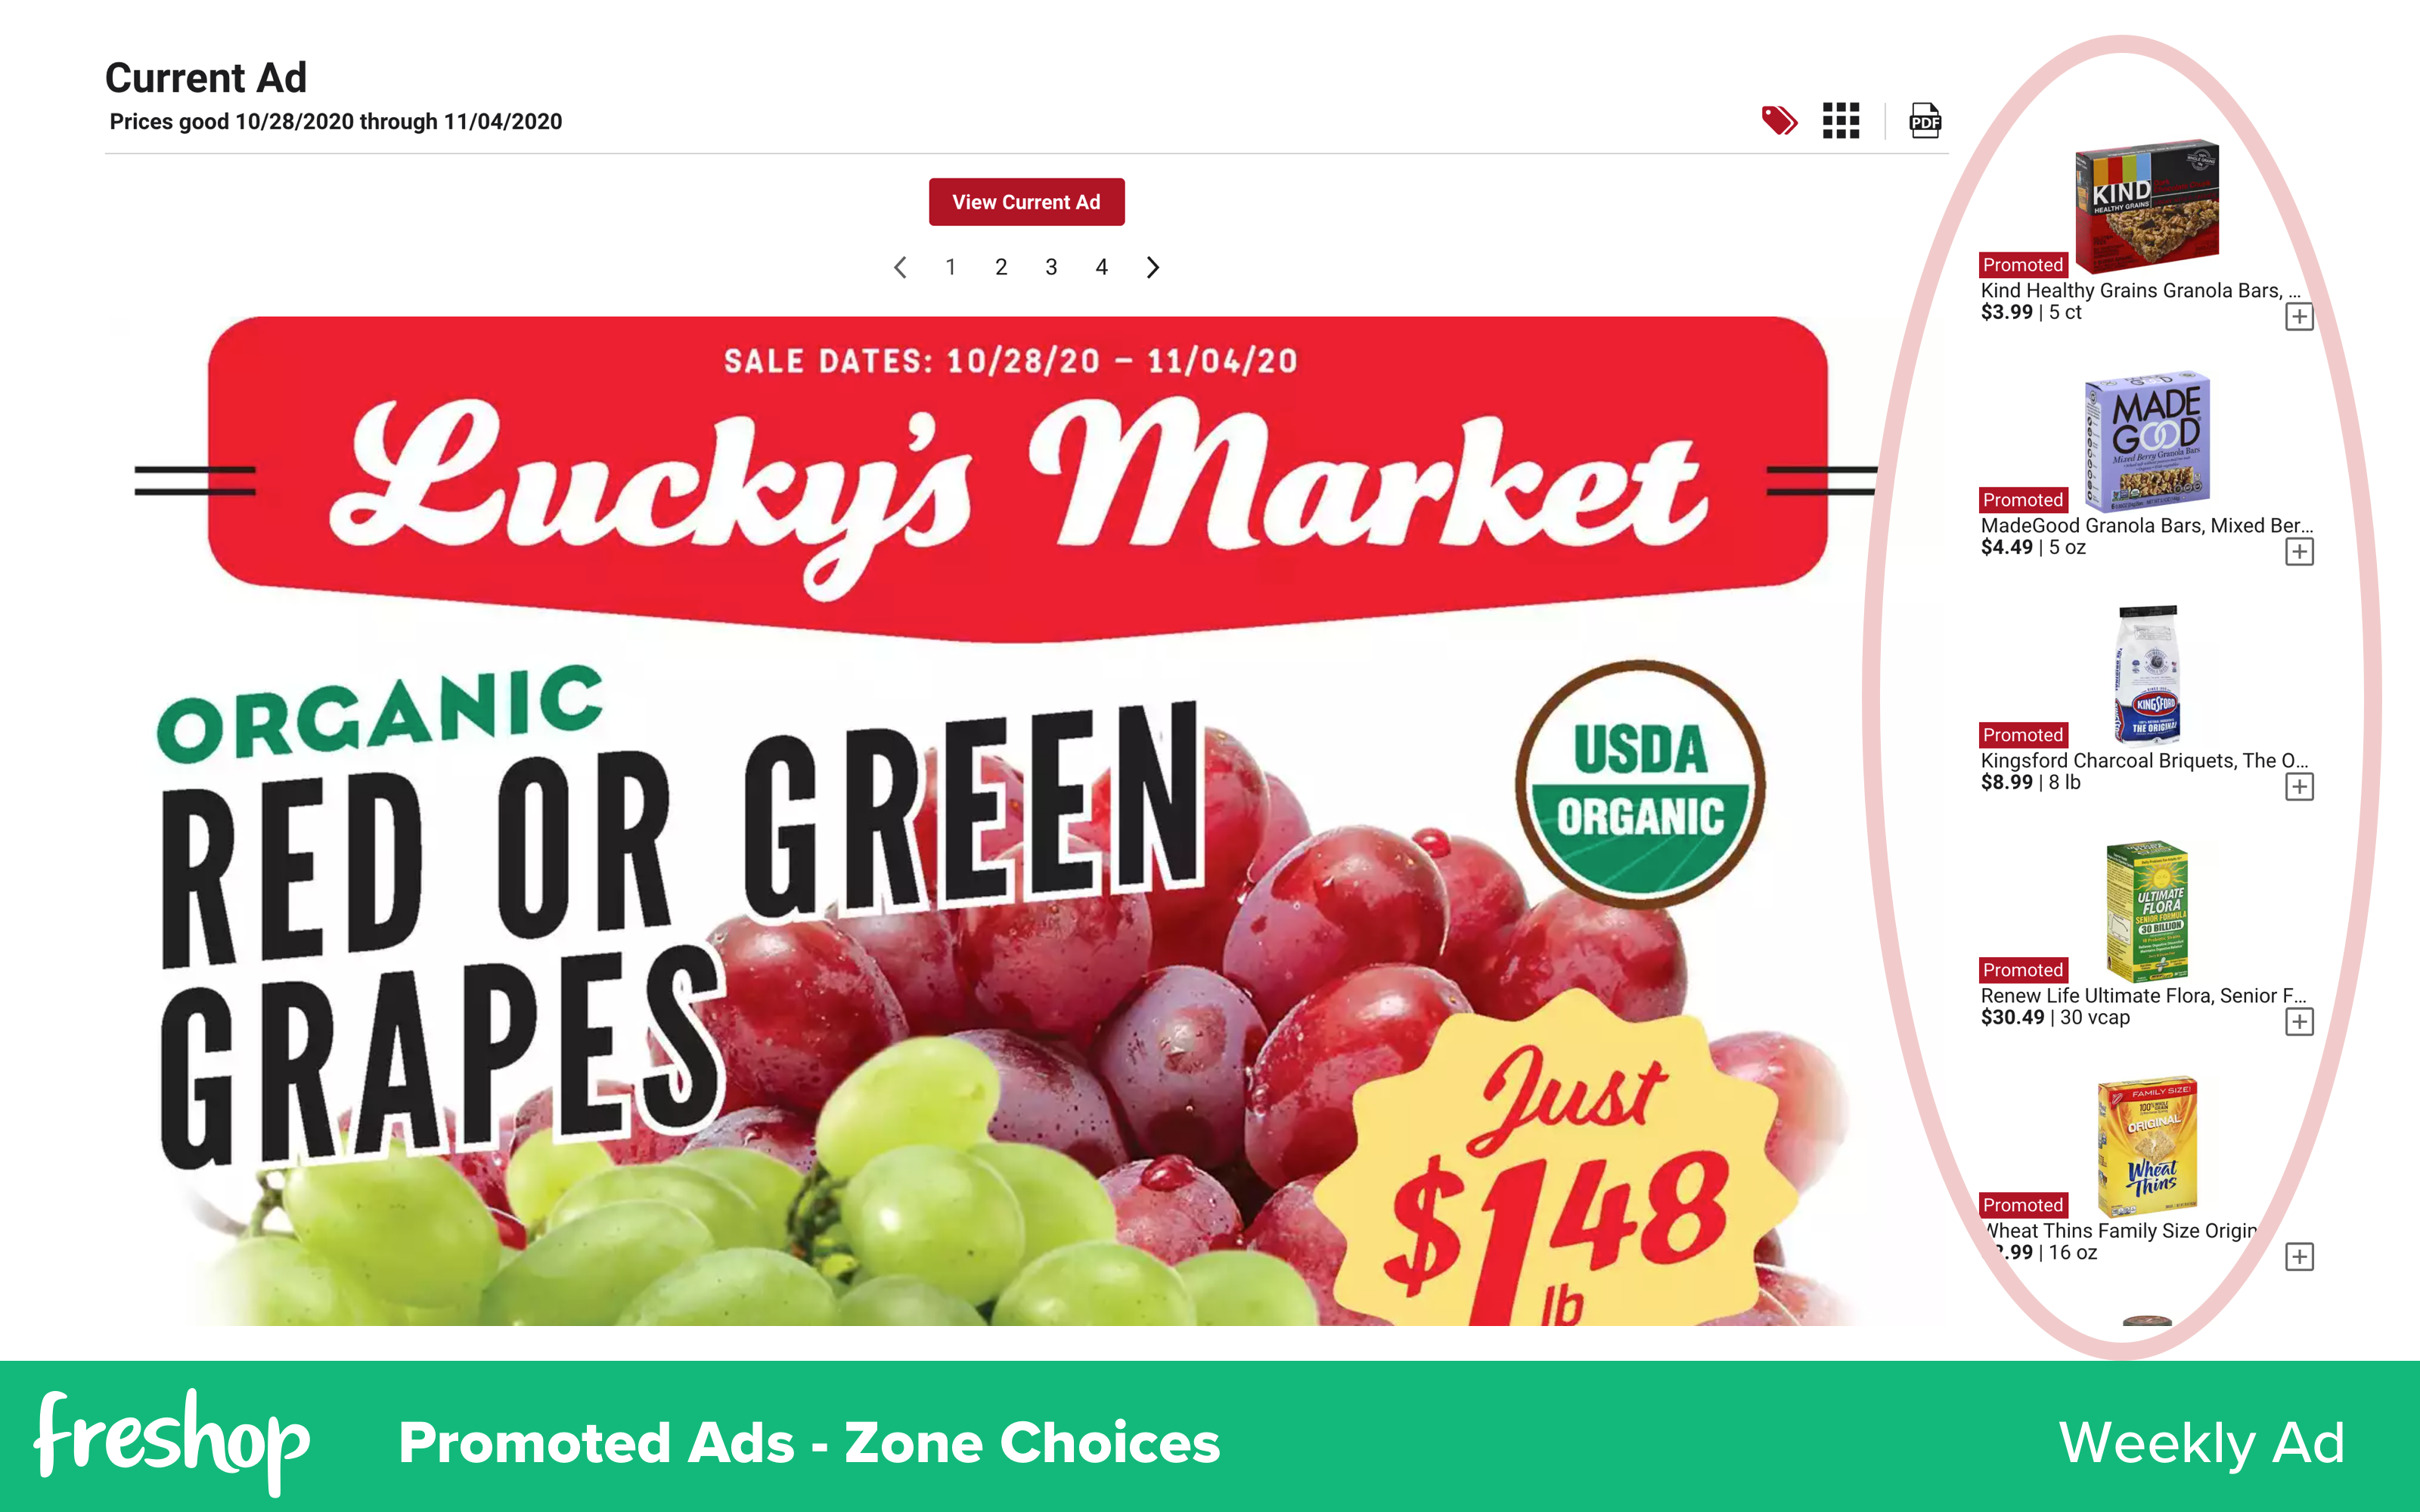 Freshop: Promoted Ads   Zones - Weekly Ad